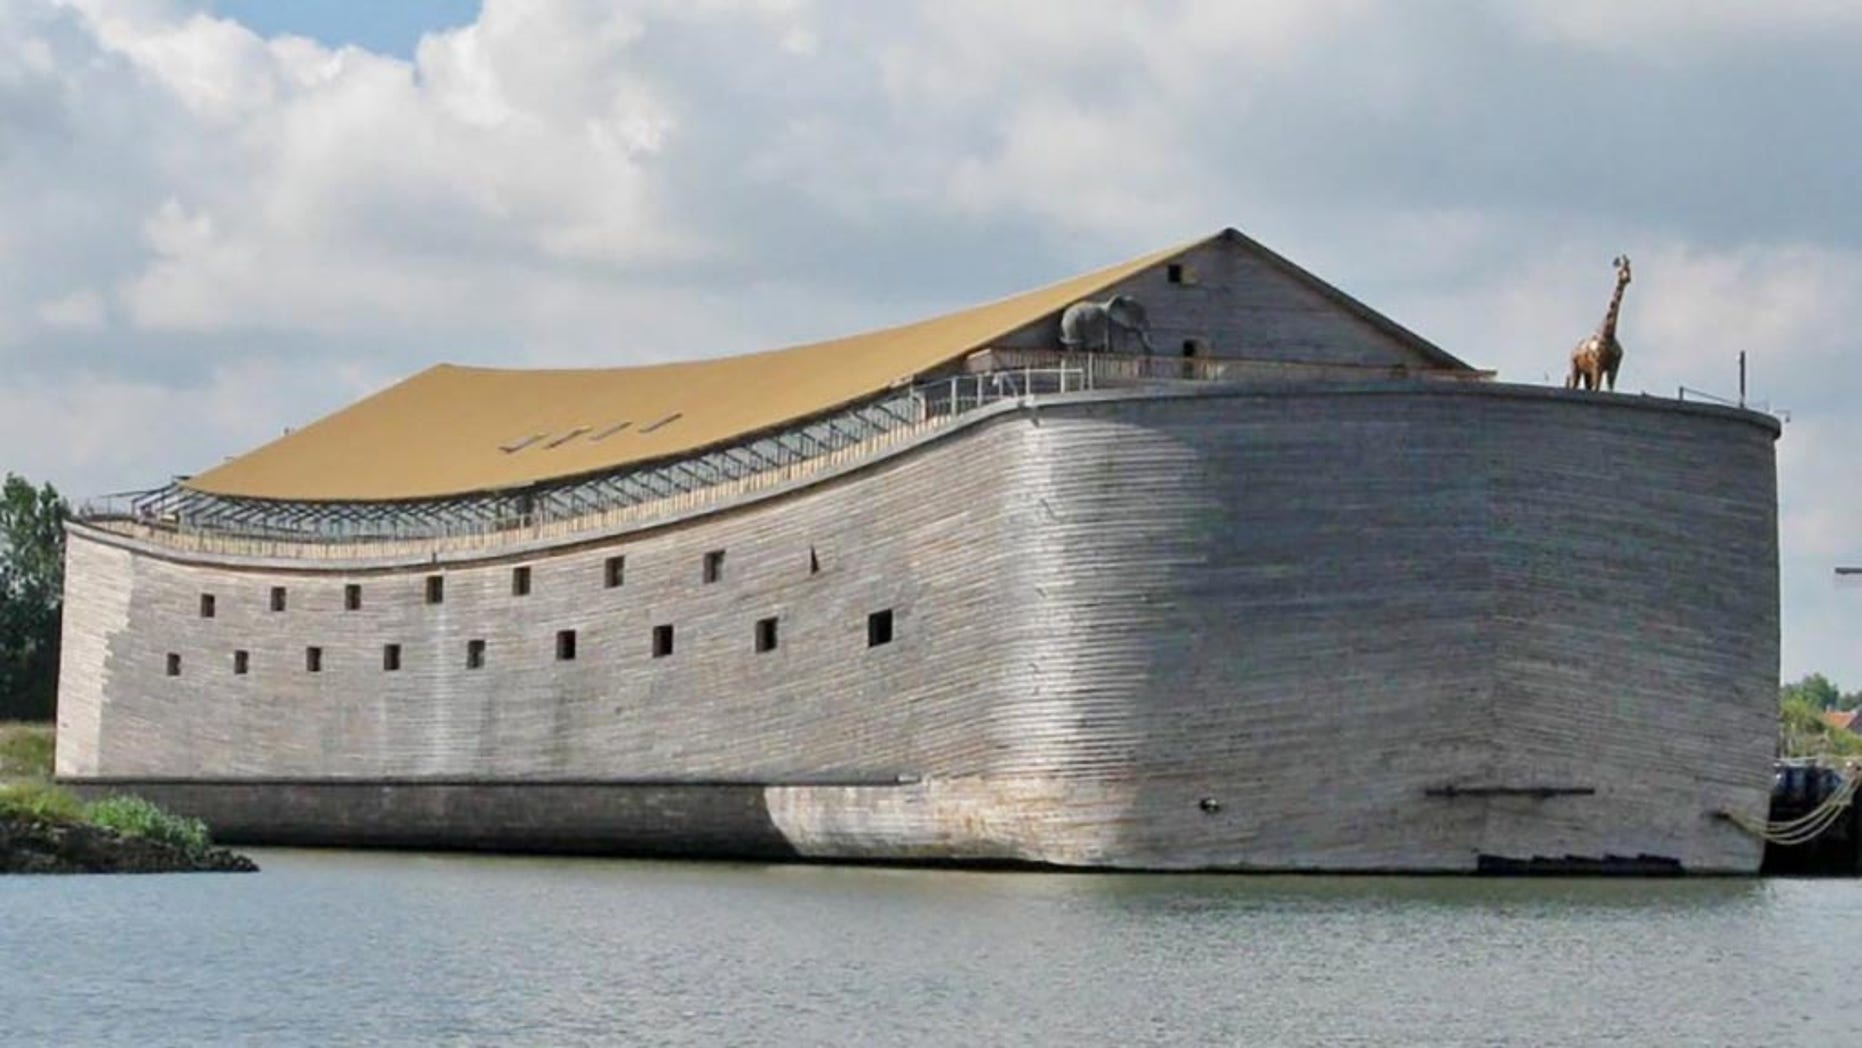 Johan Huibers' Noah's Ark cost him close to $5 million to complete.